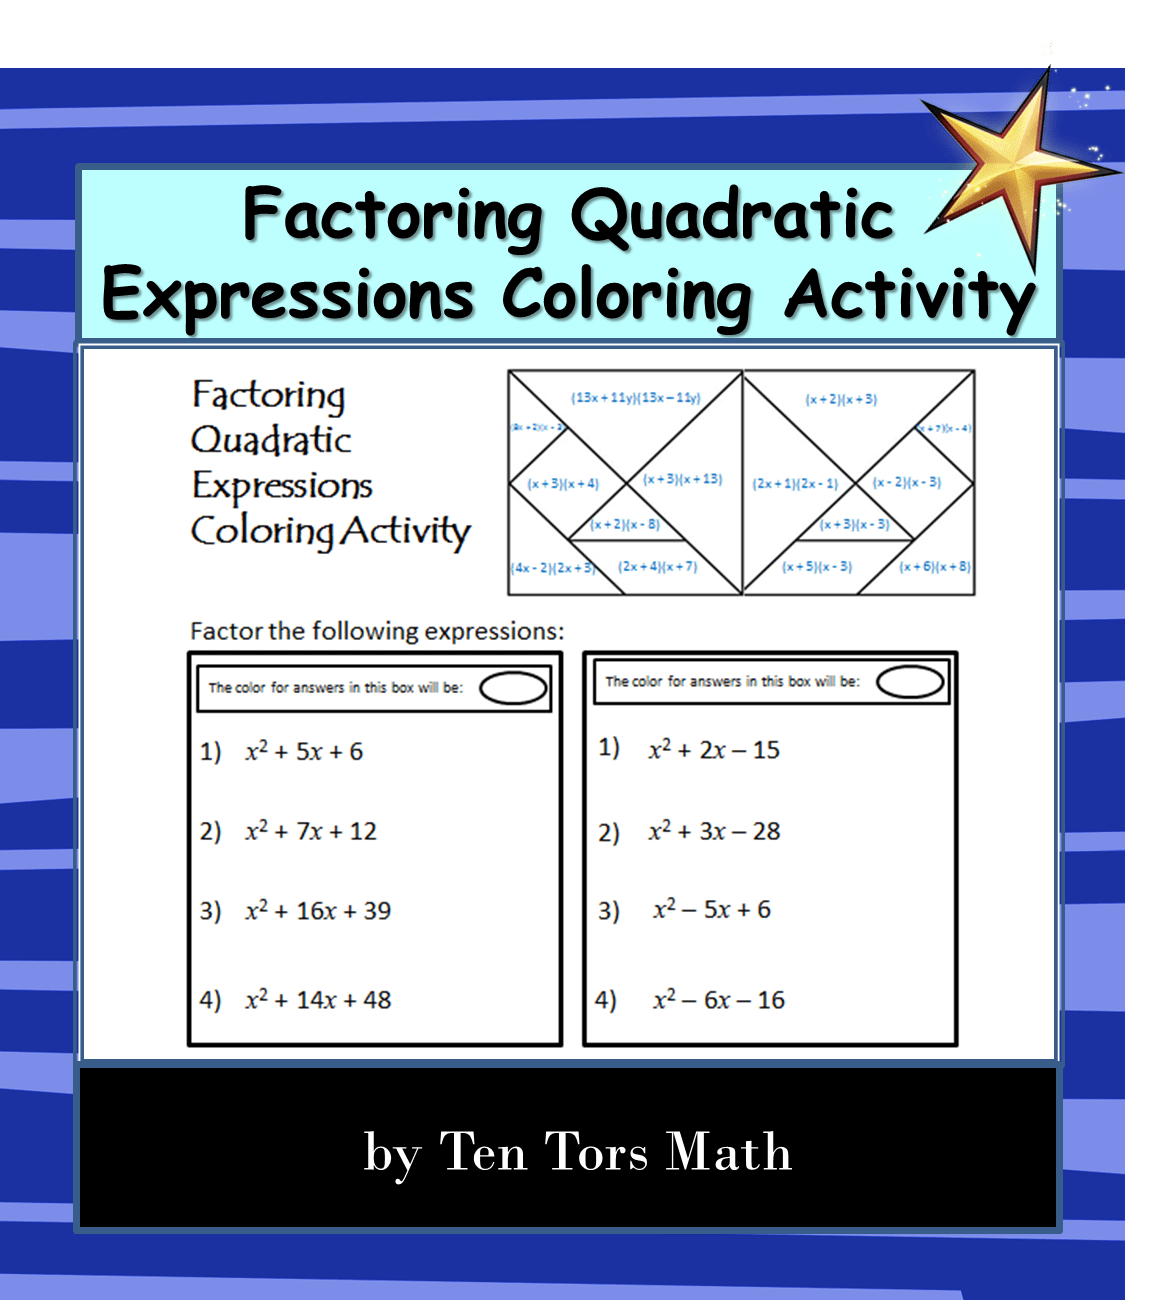 Factoring Quadratic Expressions Activity